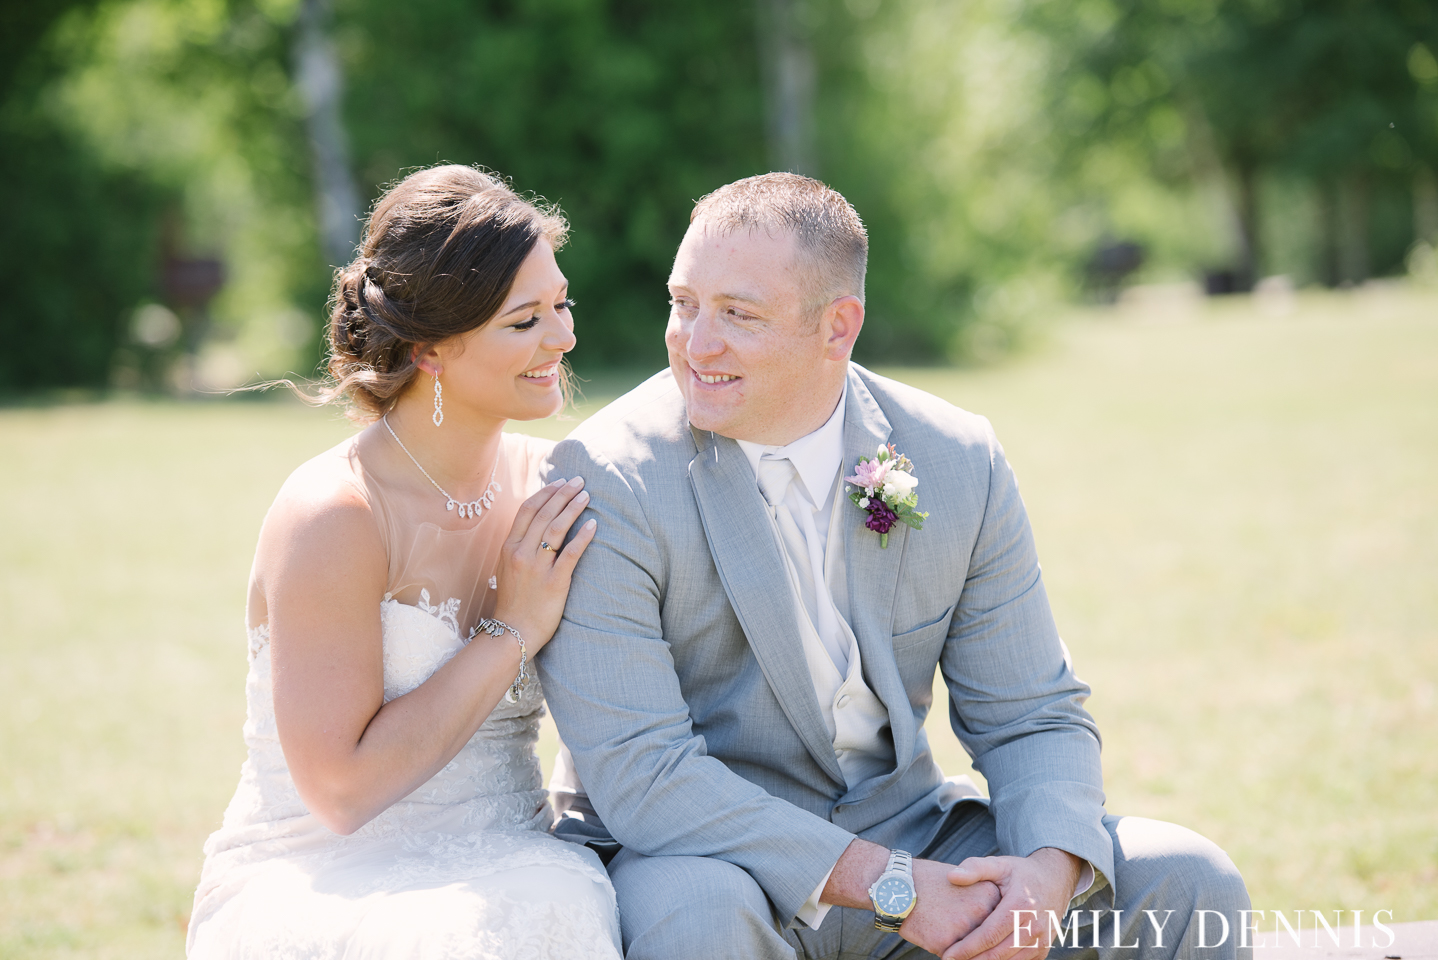 EMILY_DENNIS_PHOTOGRAPHY-44